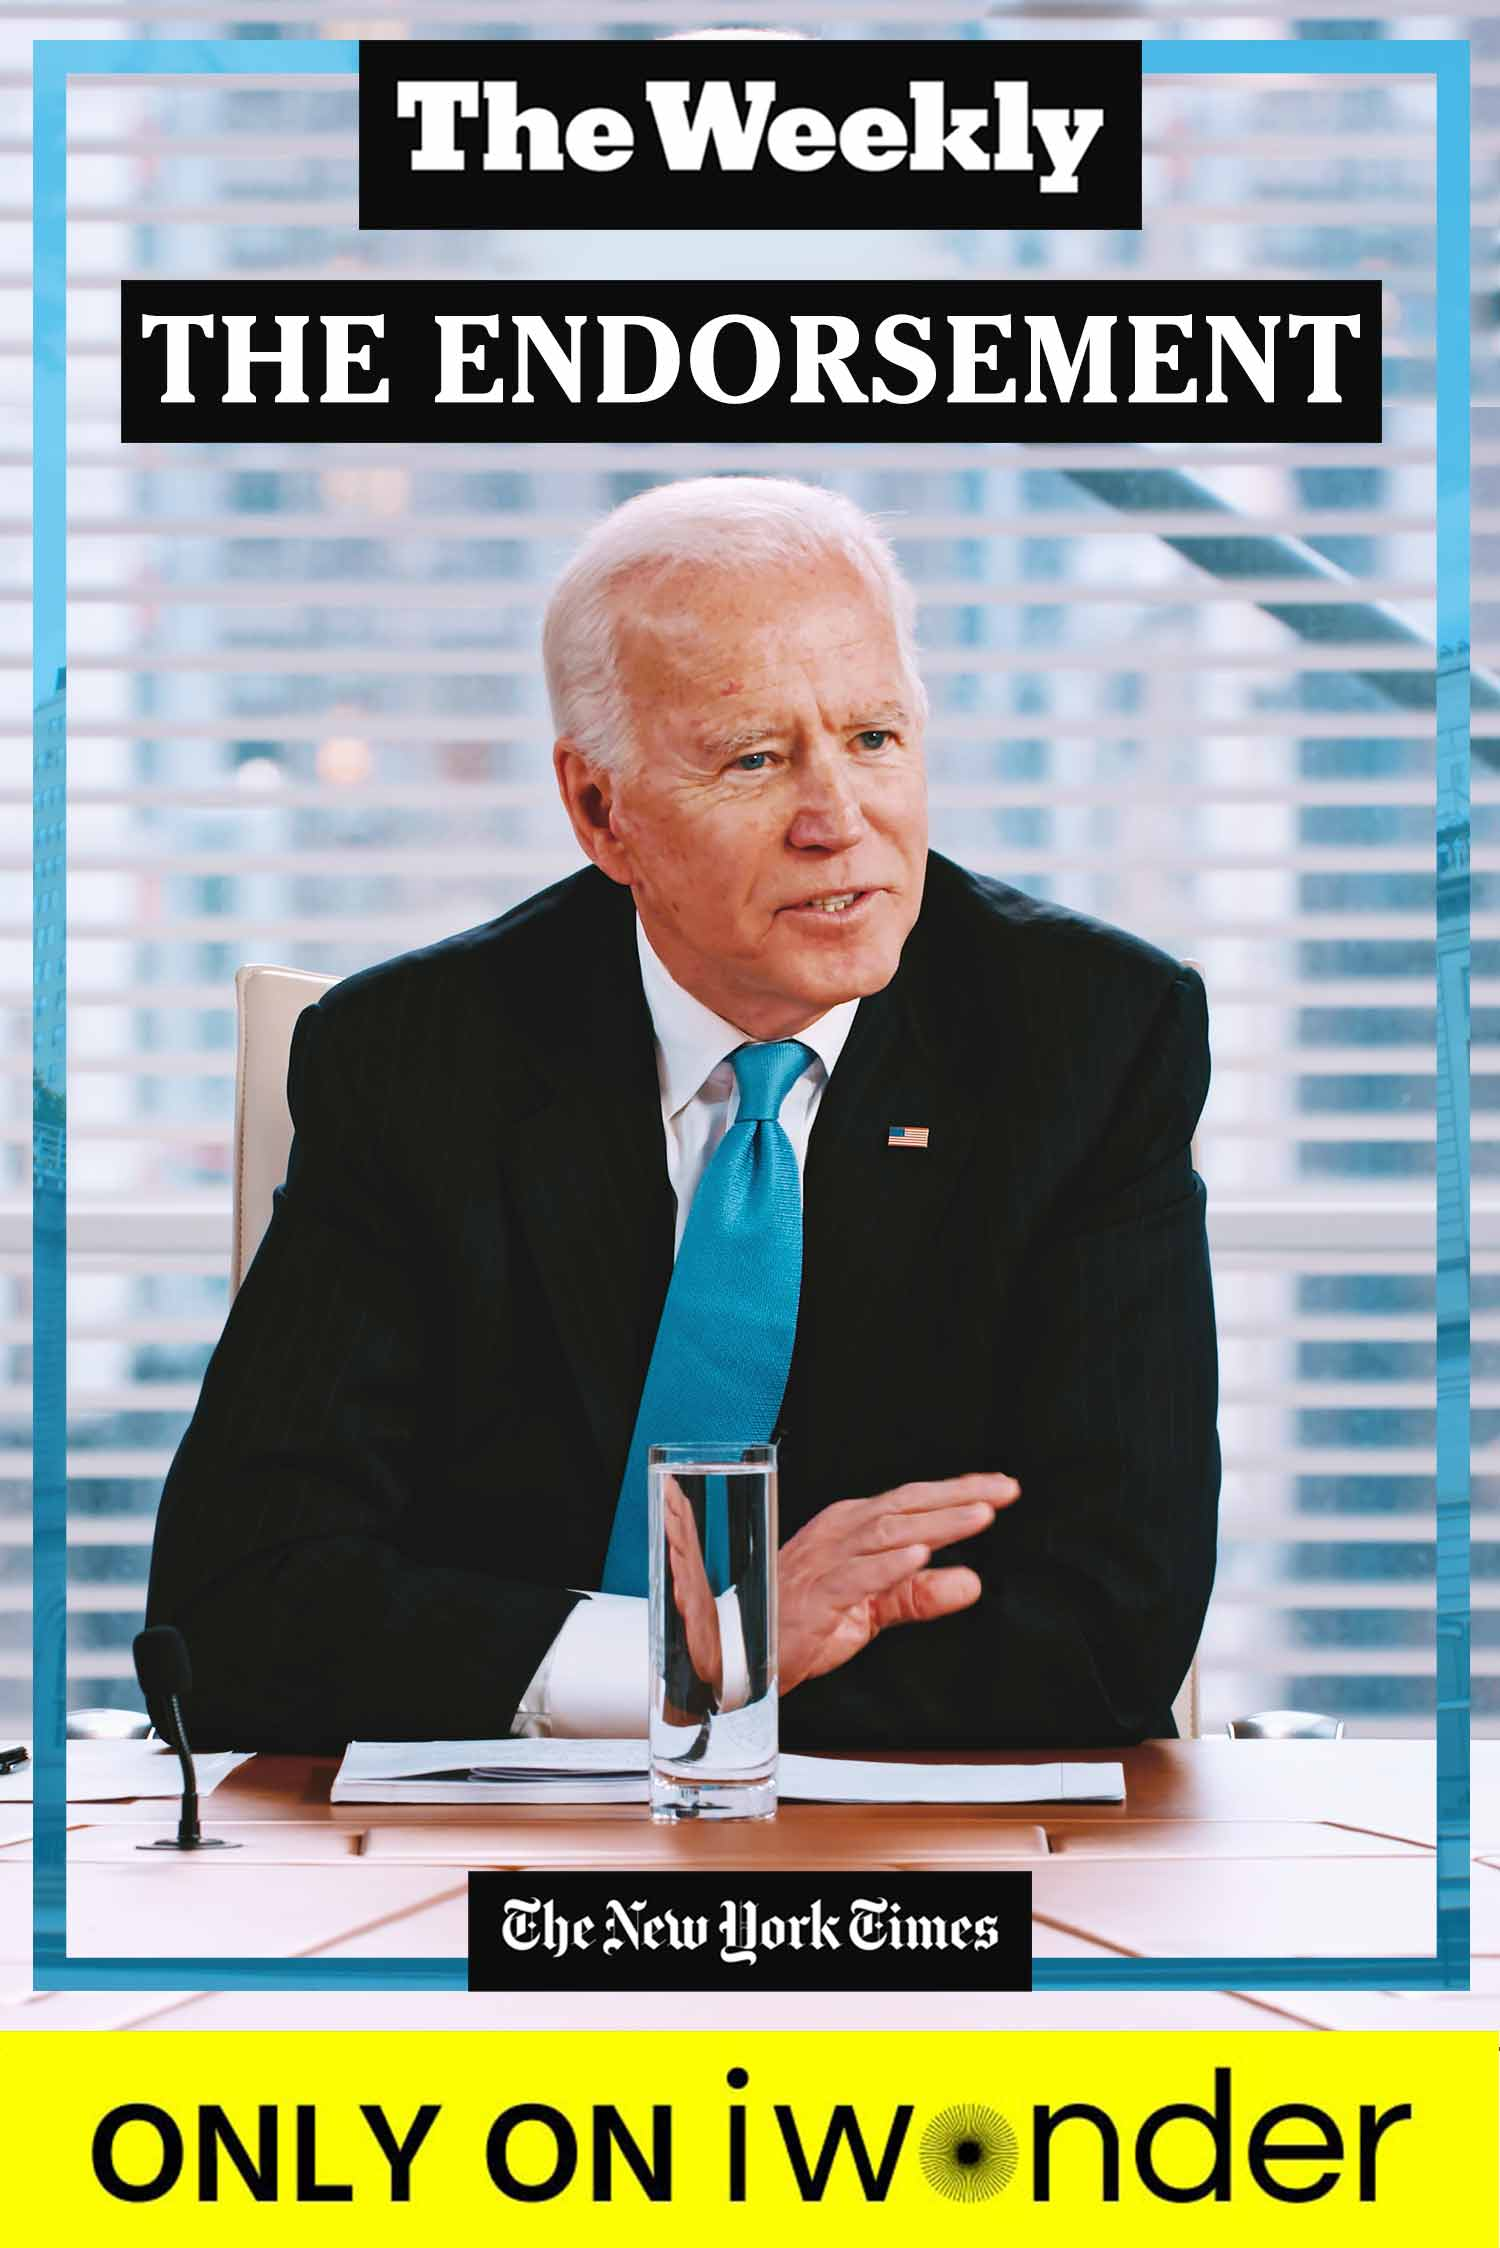 The Weekly: The Endorsement